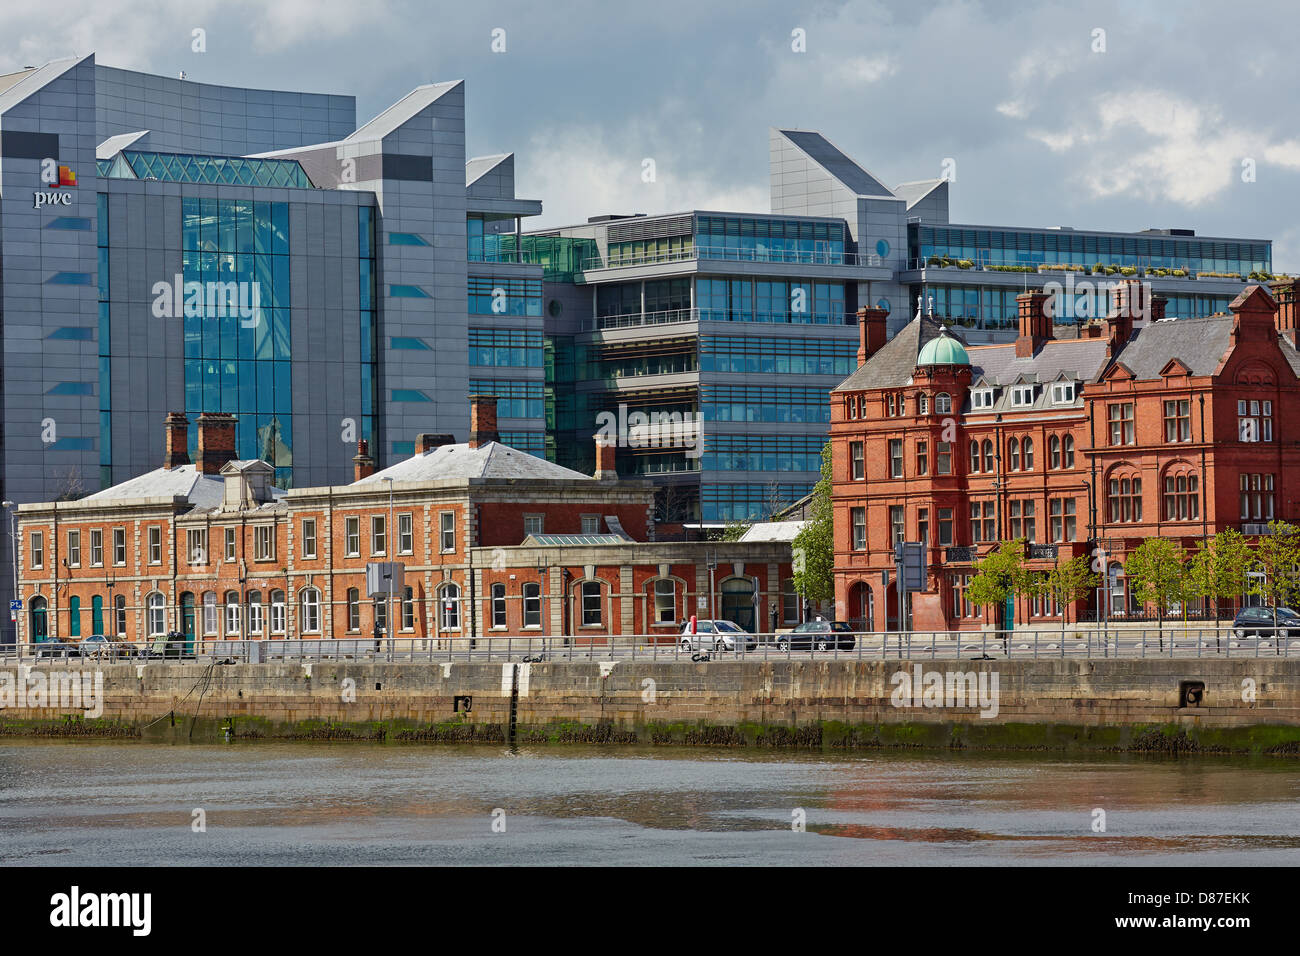 Old and new buildings sit side-by-side on North Wall Quay, Dublin Docks, Dublin, Ireland - Stock Image